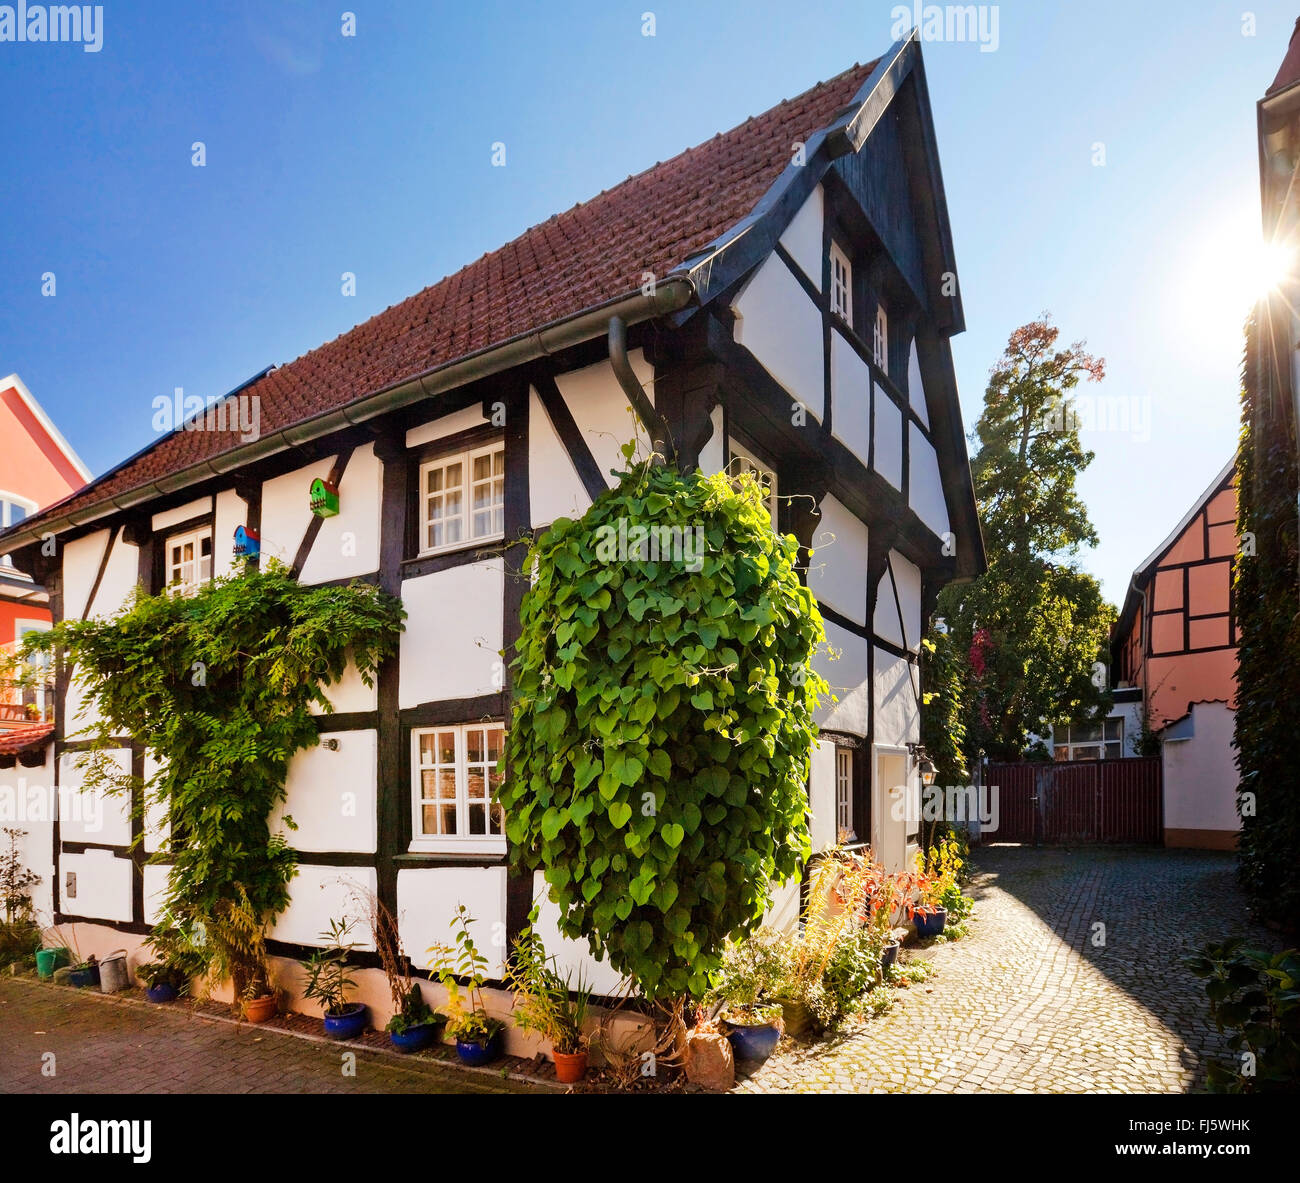 half timbered house in the old city germany north rhine westphalia stock photo royalty free. Black Bedroom Furniture Sets. Home Design Ideas